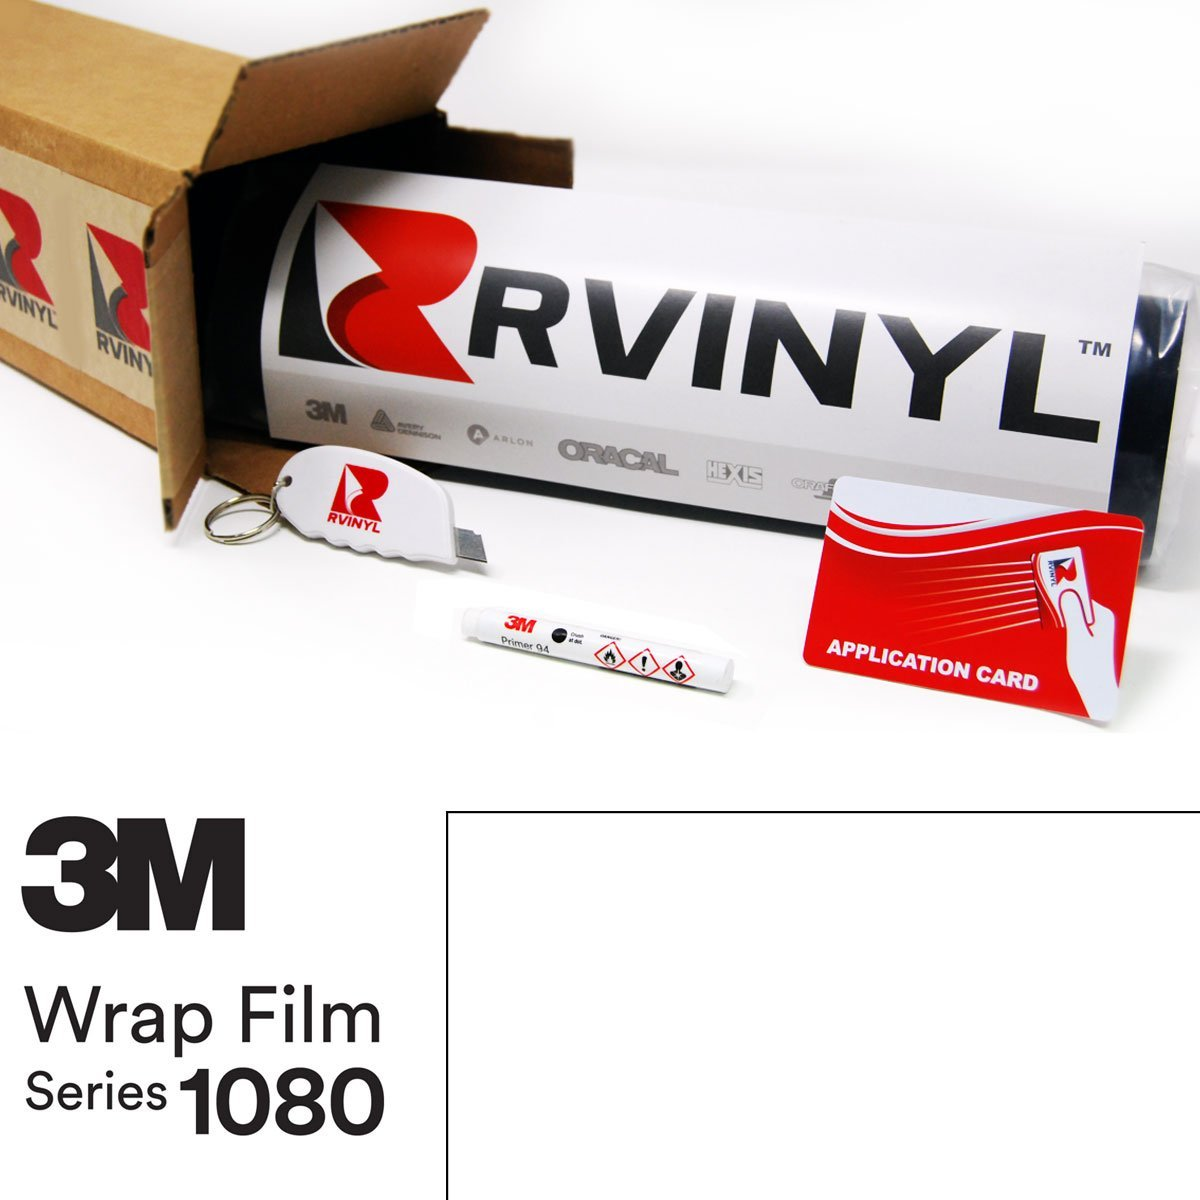 TECKWRAP Glossy Red Adhesive Vinyl Car Wrap Film Roll with Air Release 11.5x 60